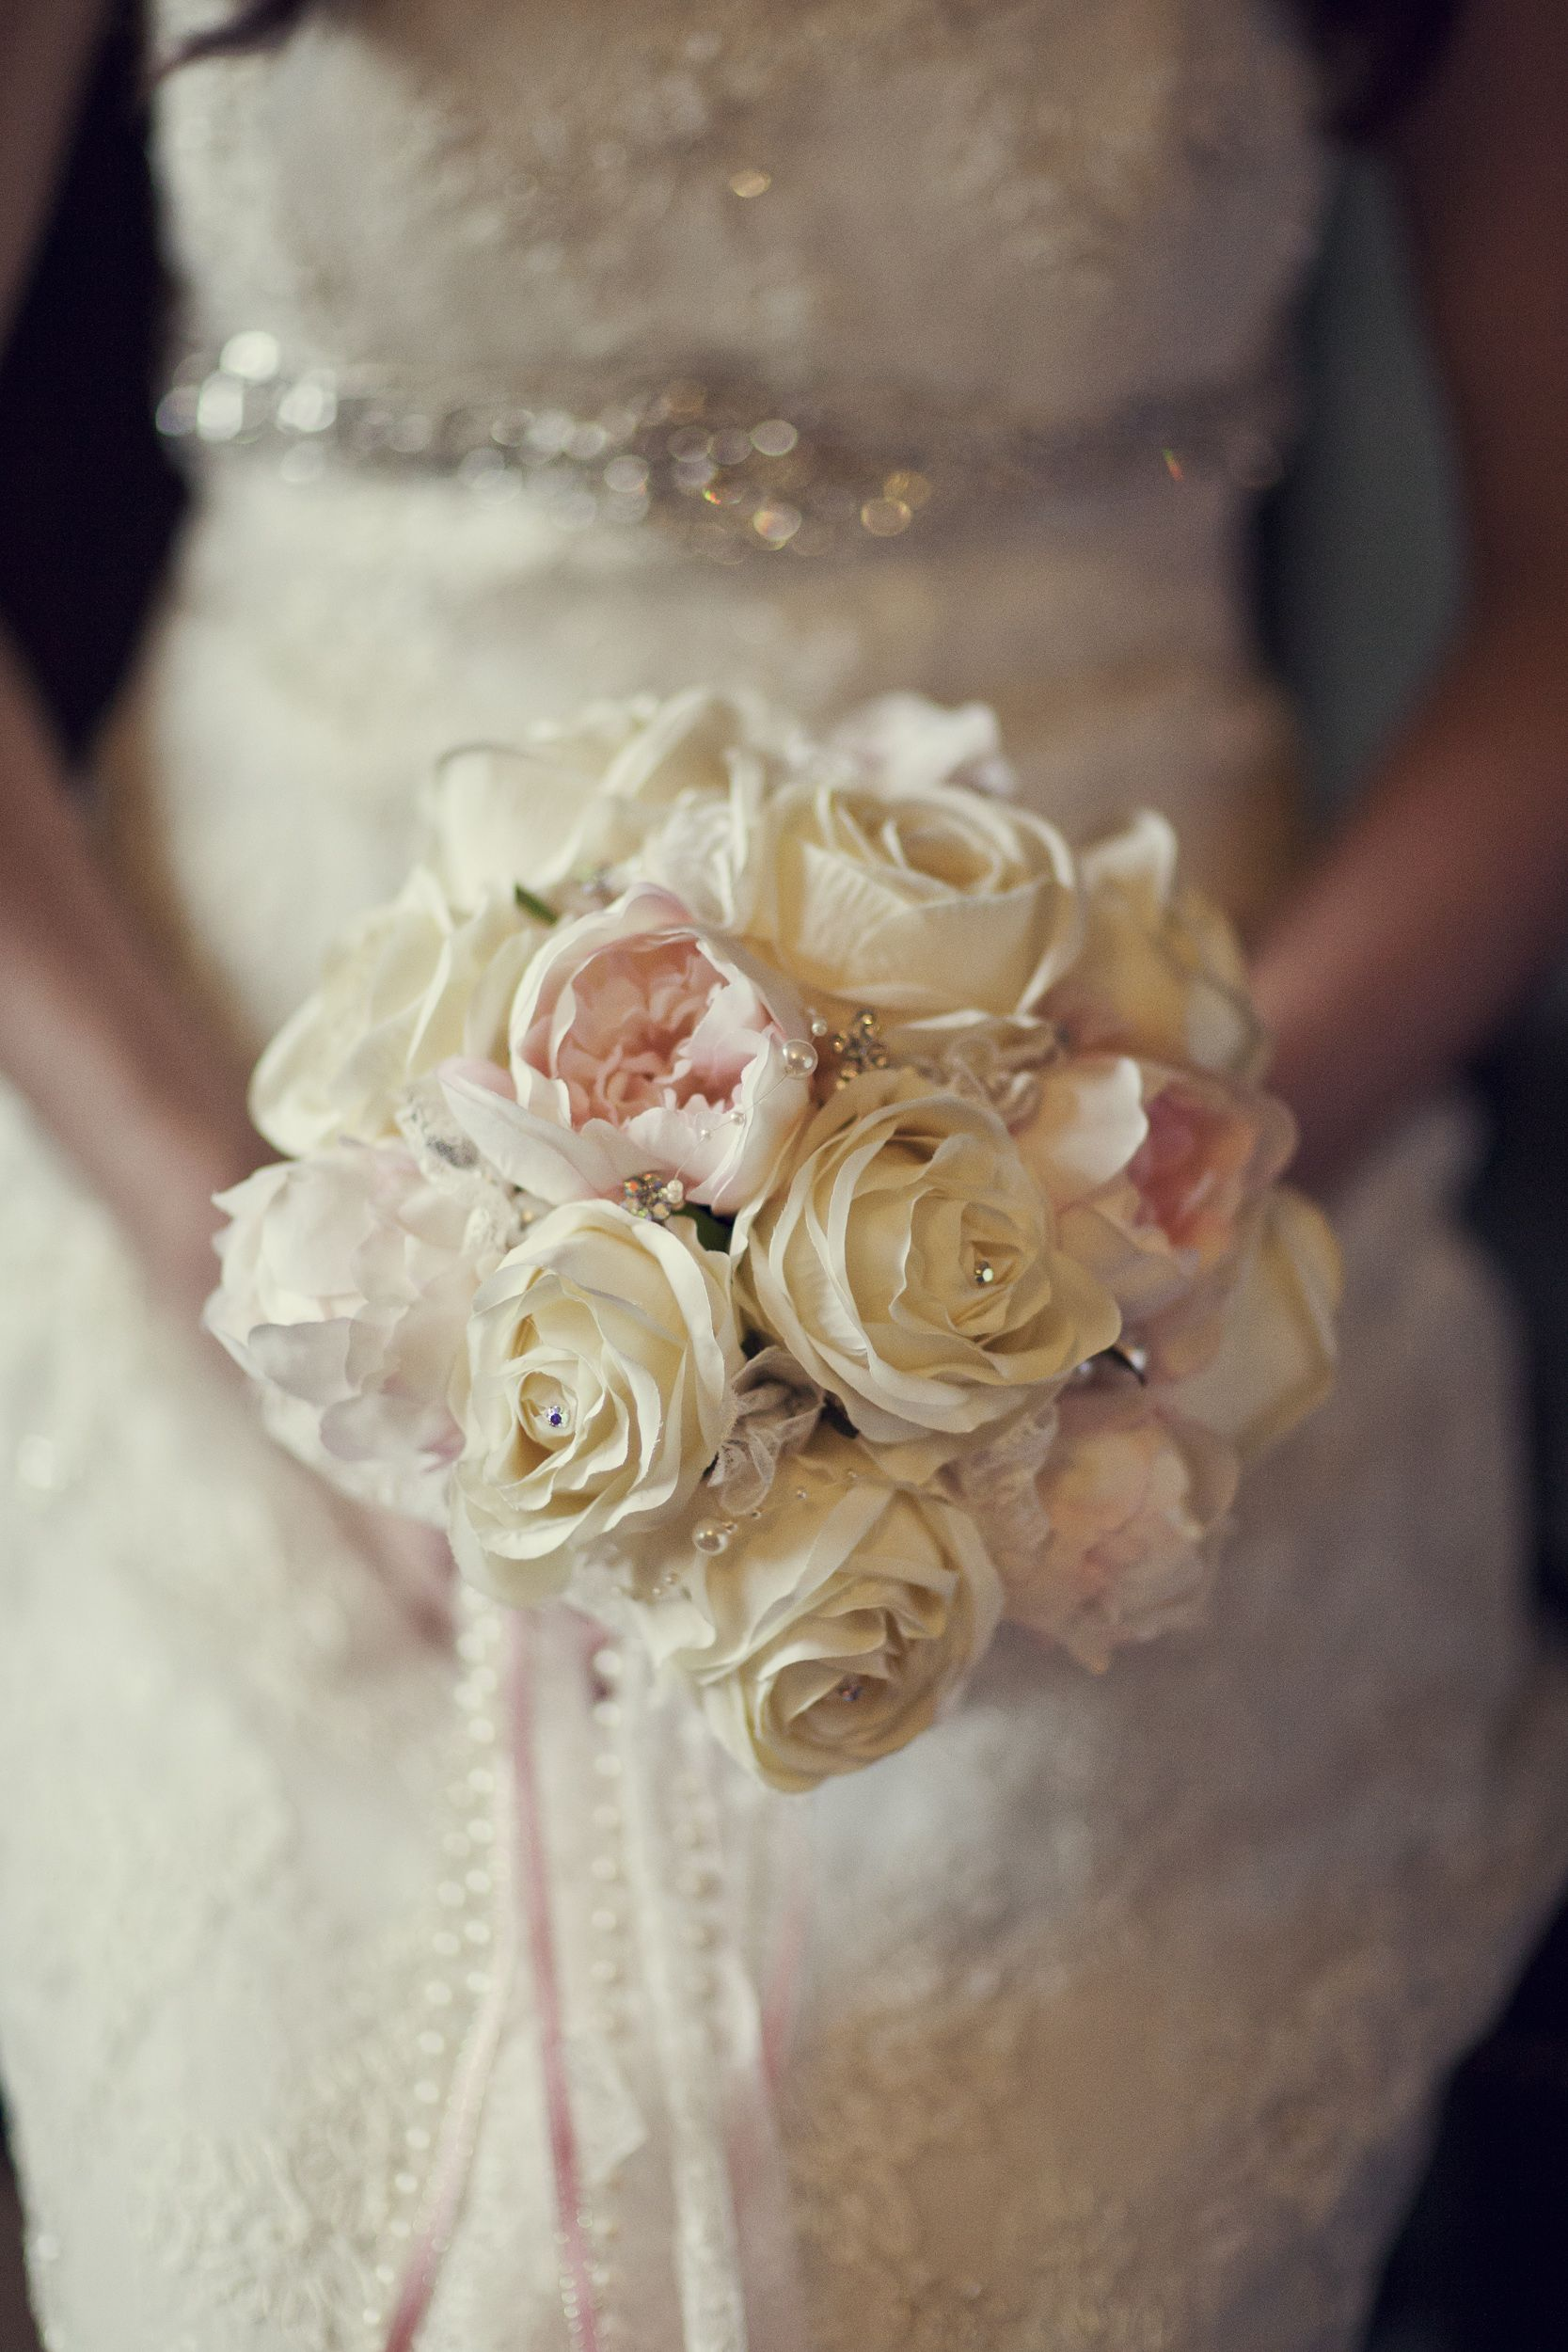 Ivory and blush pink silk bouquet of roses and peonies with ribbon romantic wedding flowers ivory and blush pink silk bouquet of roses and peonies with ribbon and pearl trails izmirmasajfo